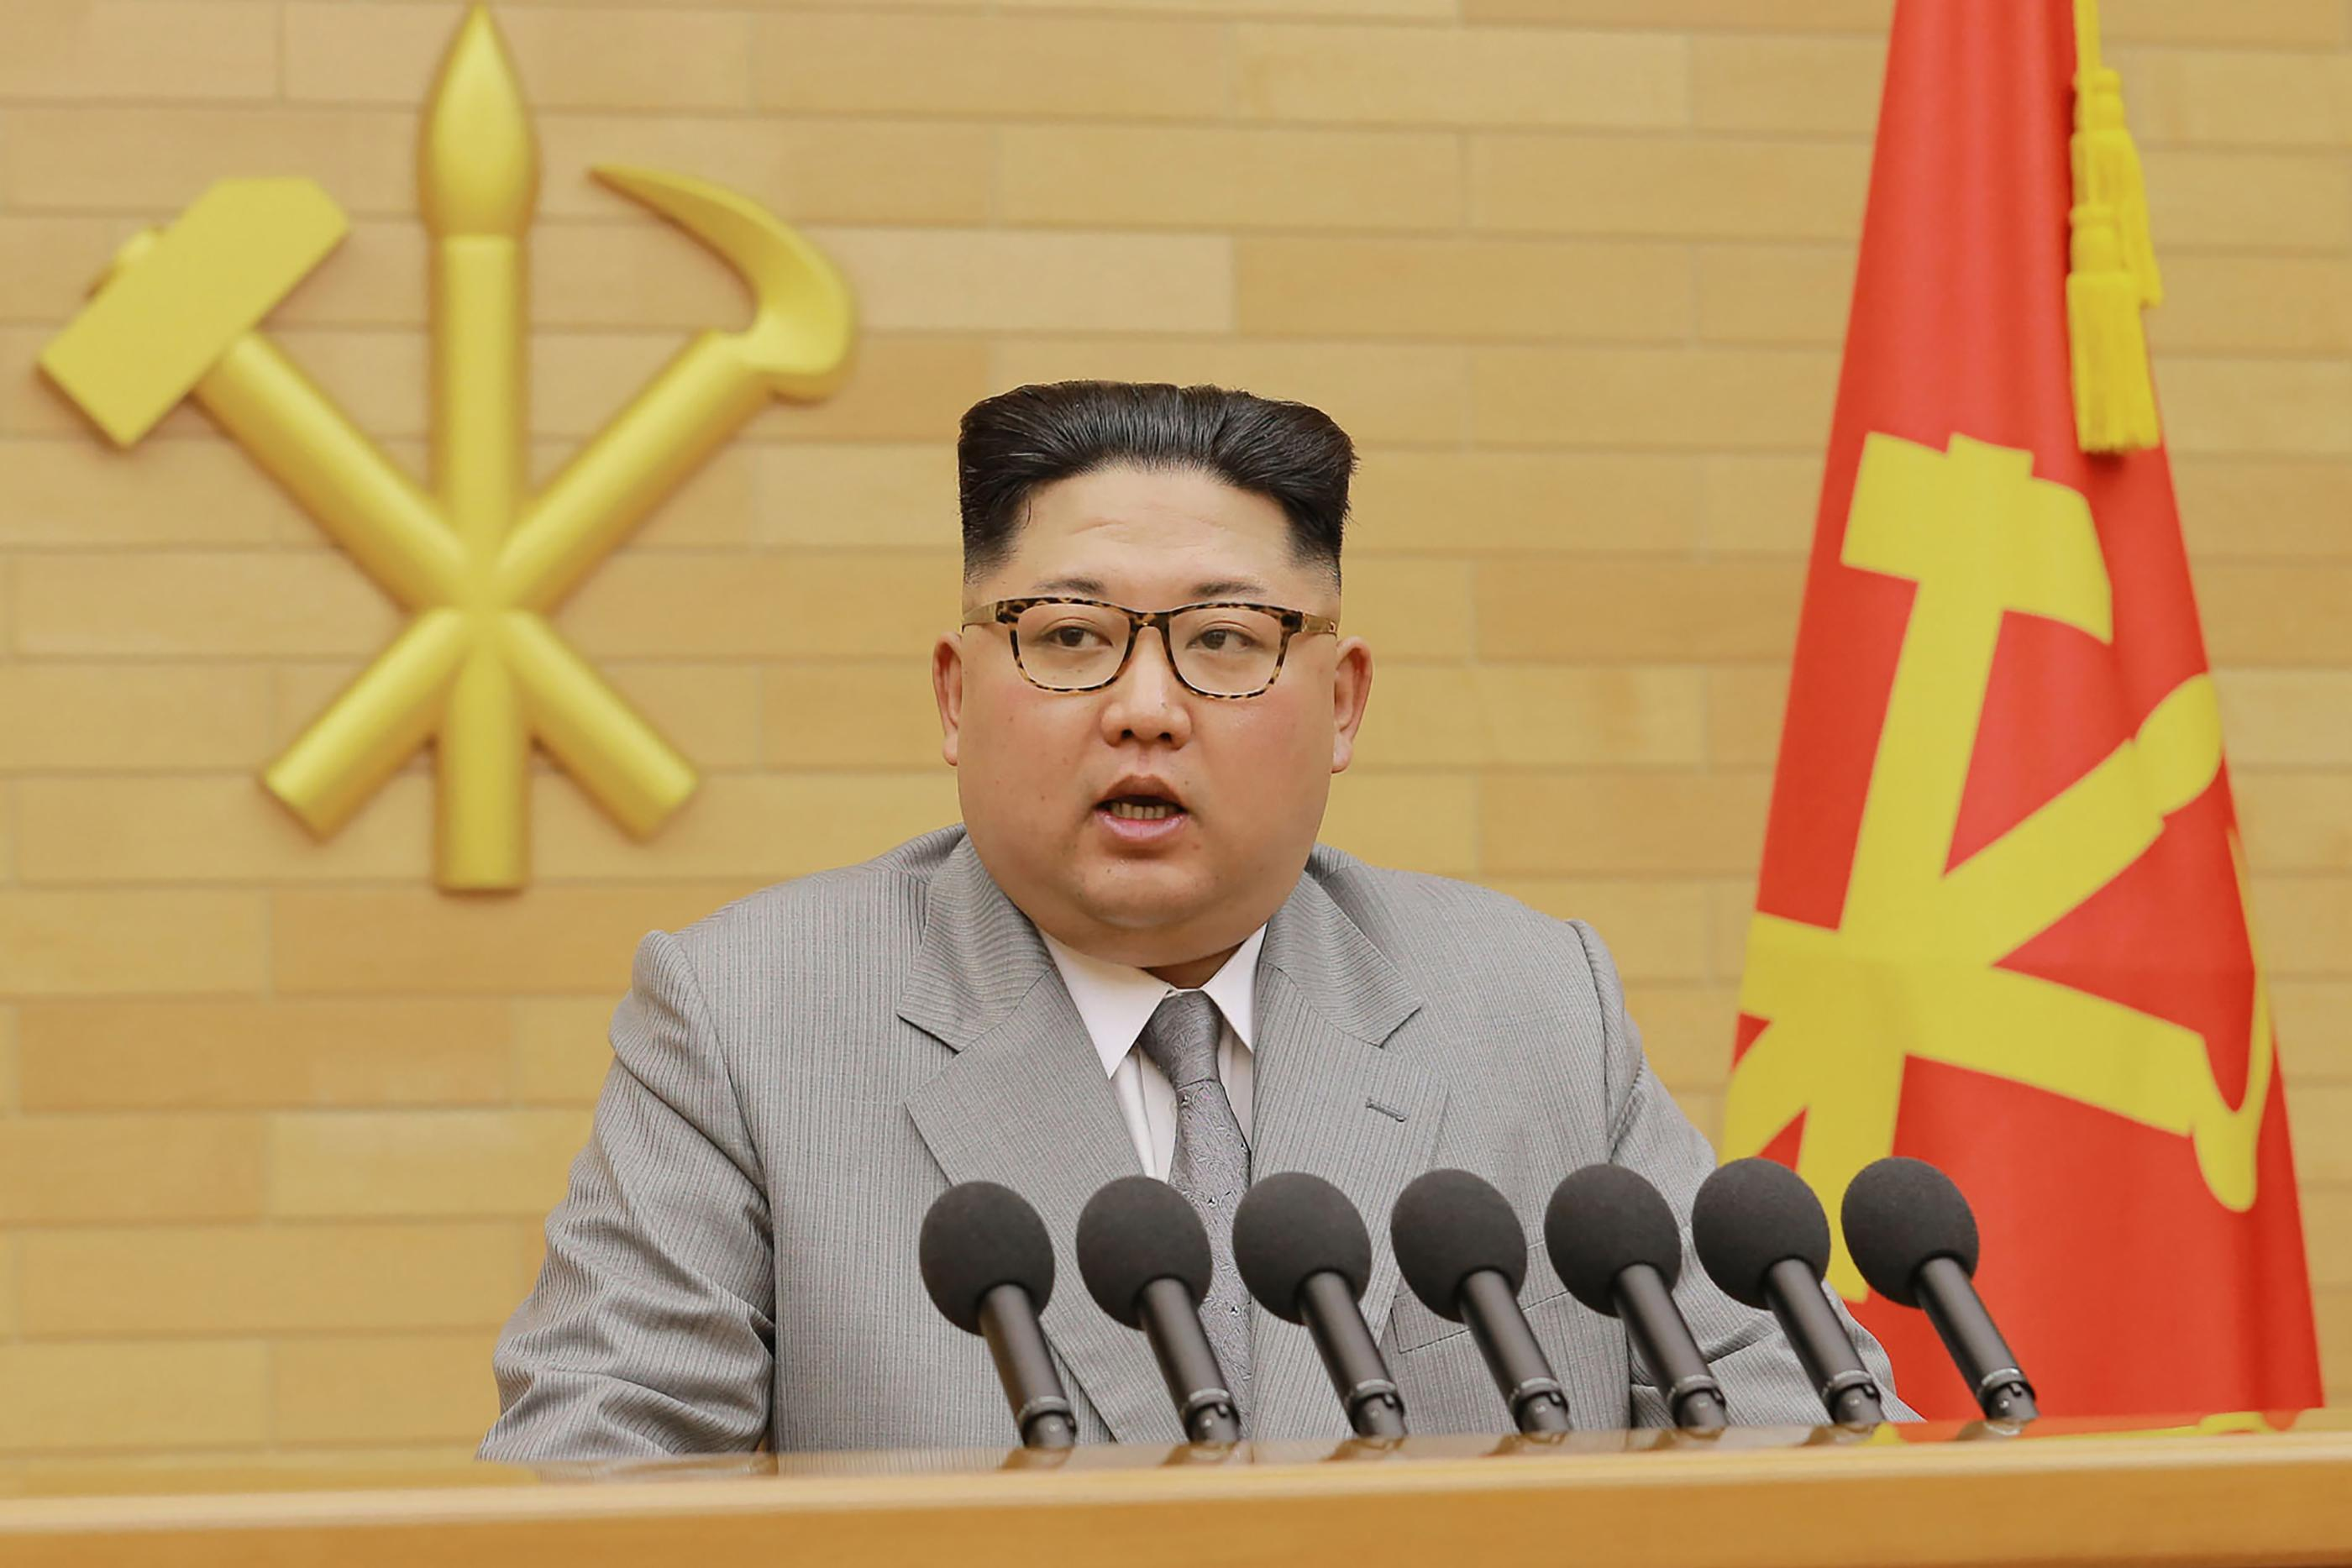 Kim Jong-Un's secret Brazilian passport discovered